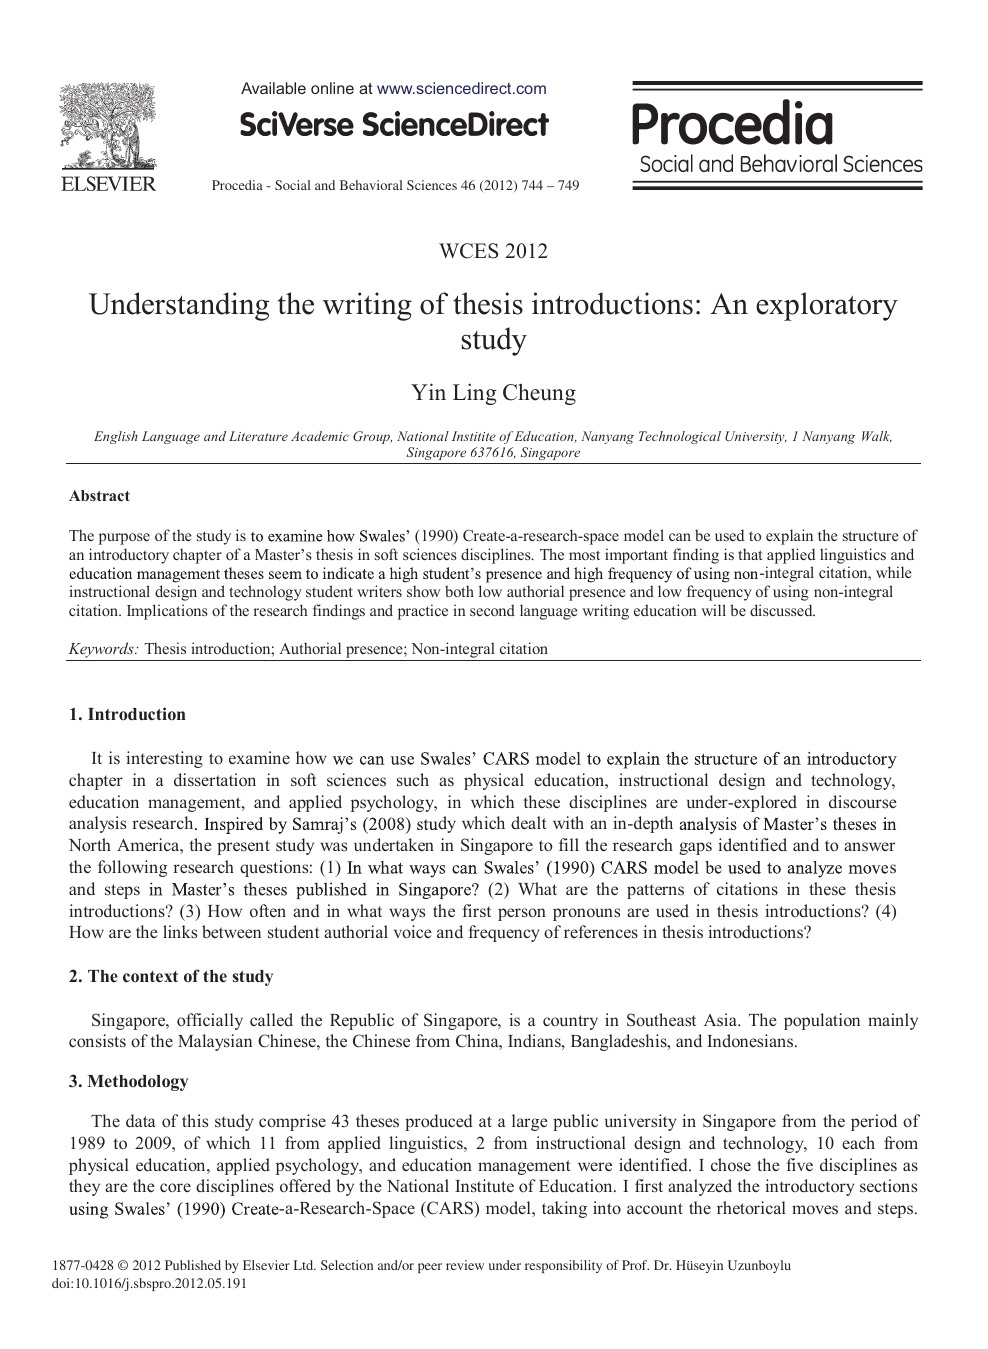 Understanding The Writing Of Thesis Introductions: An Exploratory Study –  Topic Of Research Paper In Educational Sciences. Download Scholarly Article  PDF And Read For Free On CyberLeninka Open Science Hub.